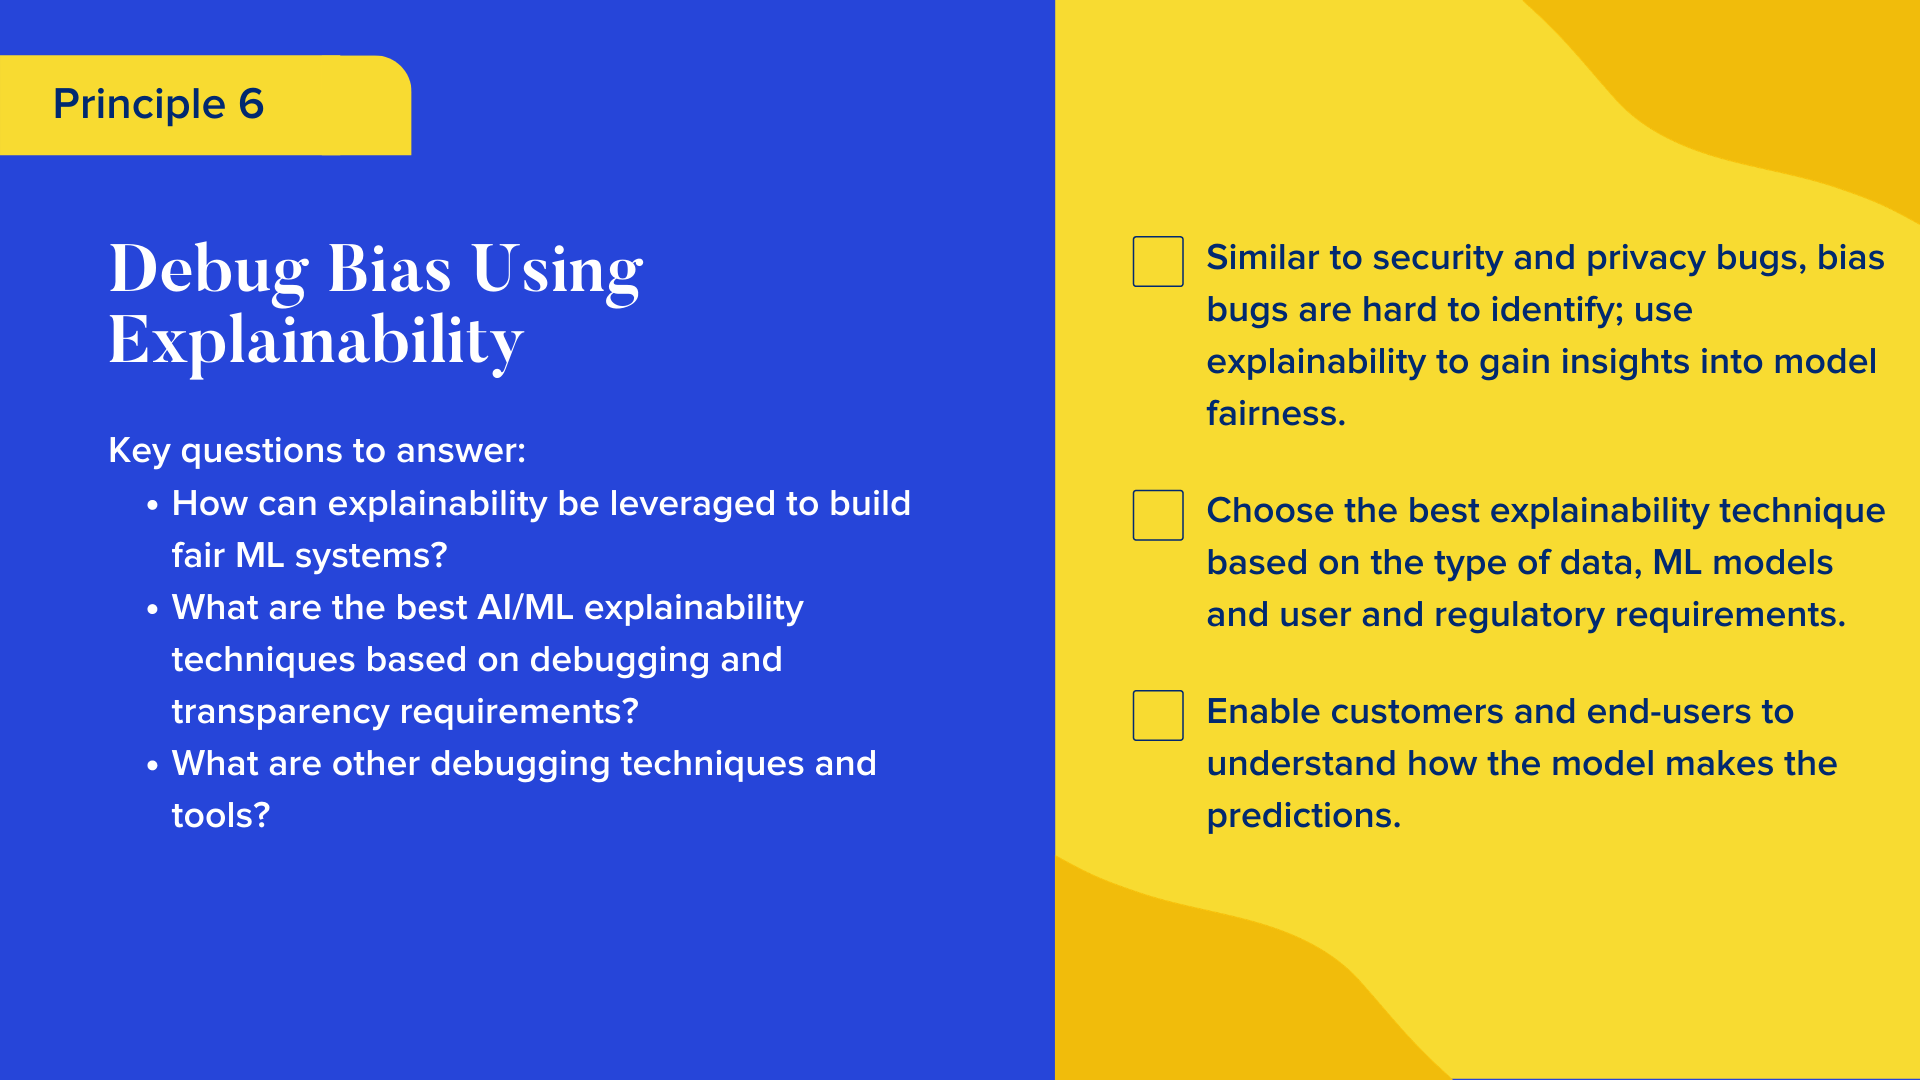 Key questions to answer  How can explainability be leveraged to build fair ML systems? What are the best AI/ML explainability techniques based on debugging and transparency requirements?  What are other debugging techniques and tools?  Checklist  Similar to security and privacy bugs, bias bugs are hard to identify; use explainability to gain insights into model fairness.  Choose the best explainability technique based on the type of data, ML models and user and regulatory requirements.  Enable customers and end-users to understand how the model makes the predictions.